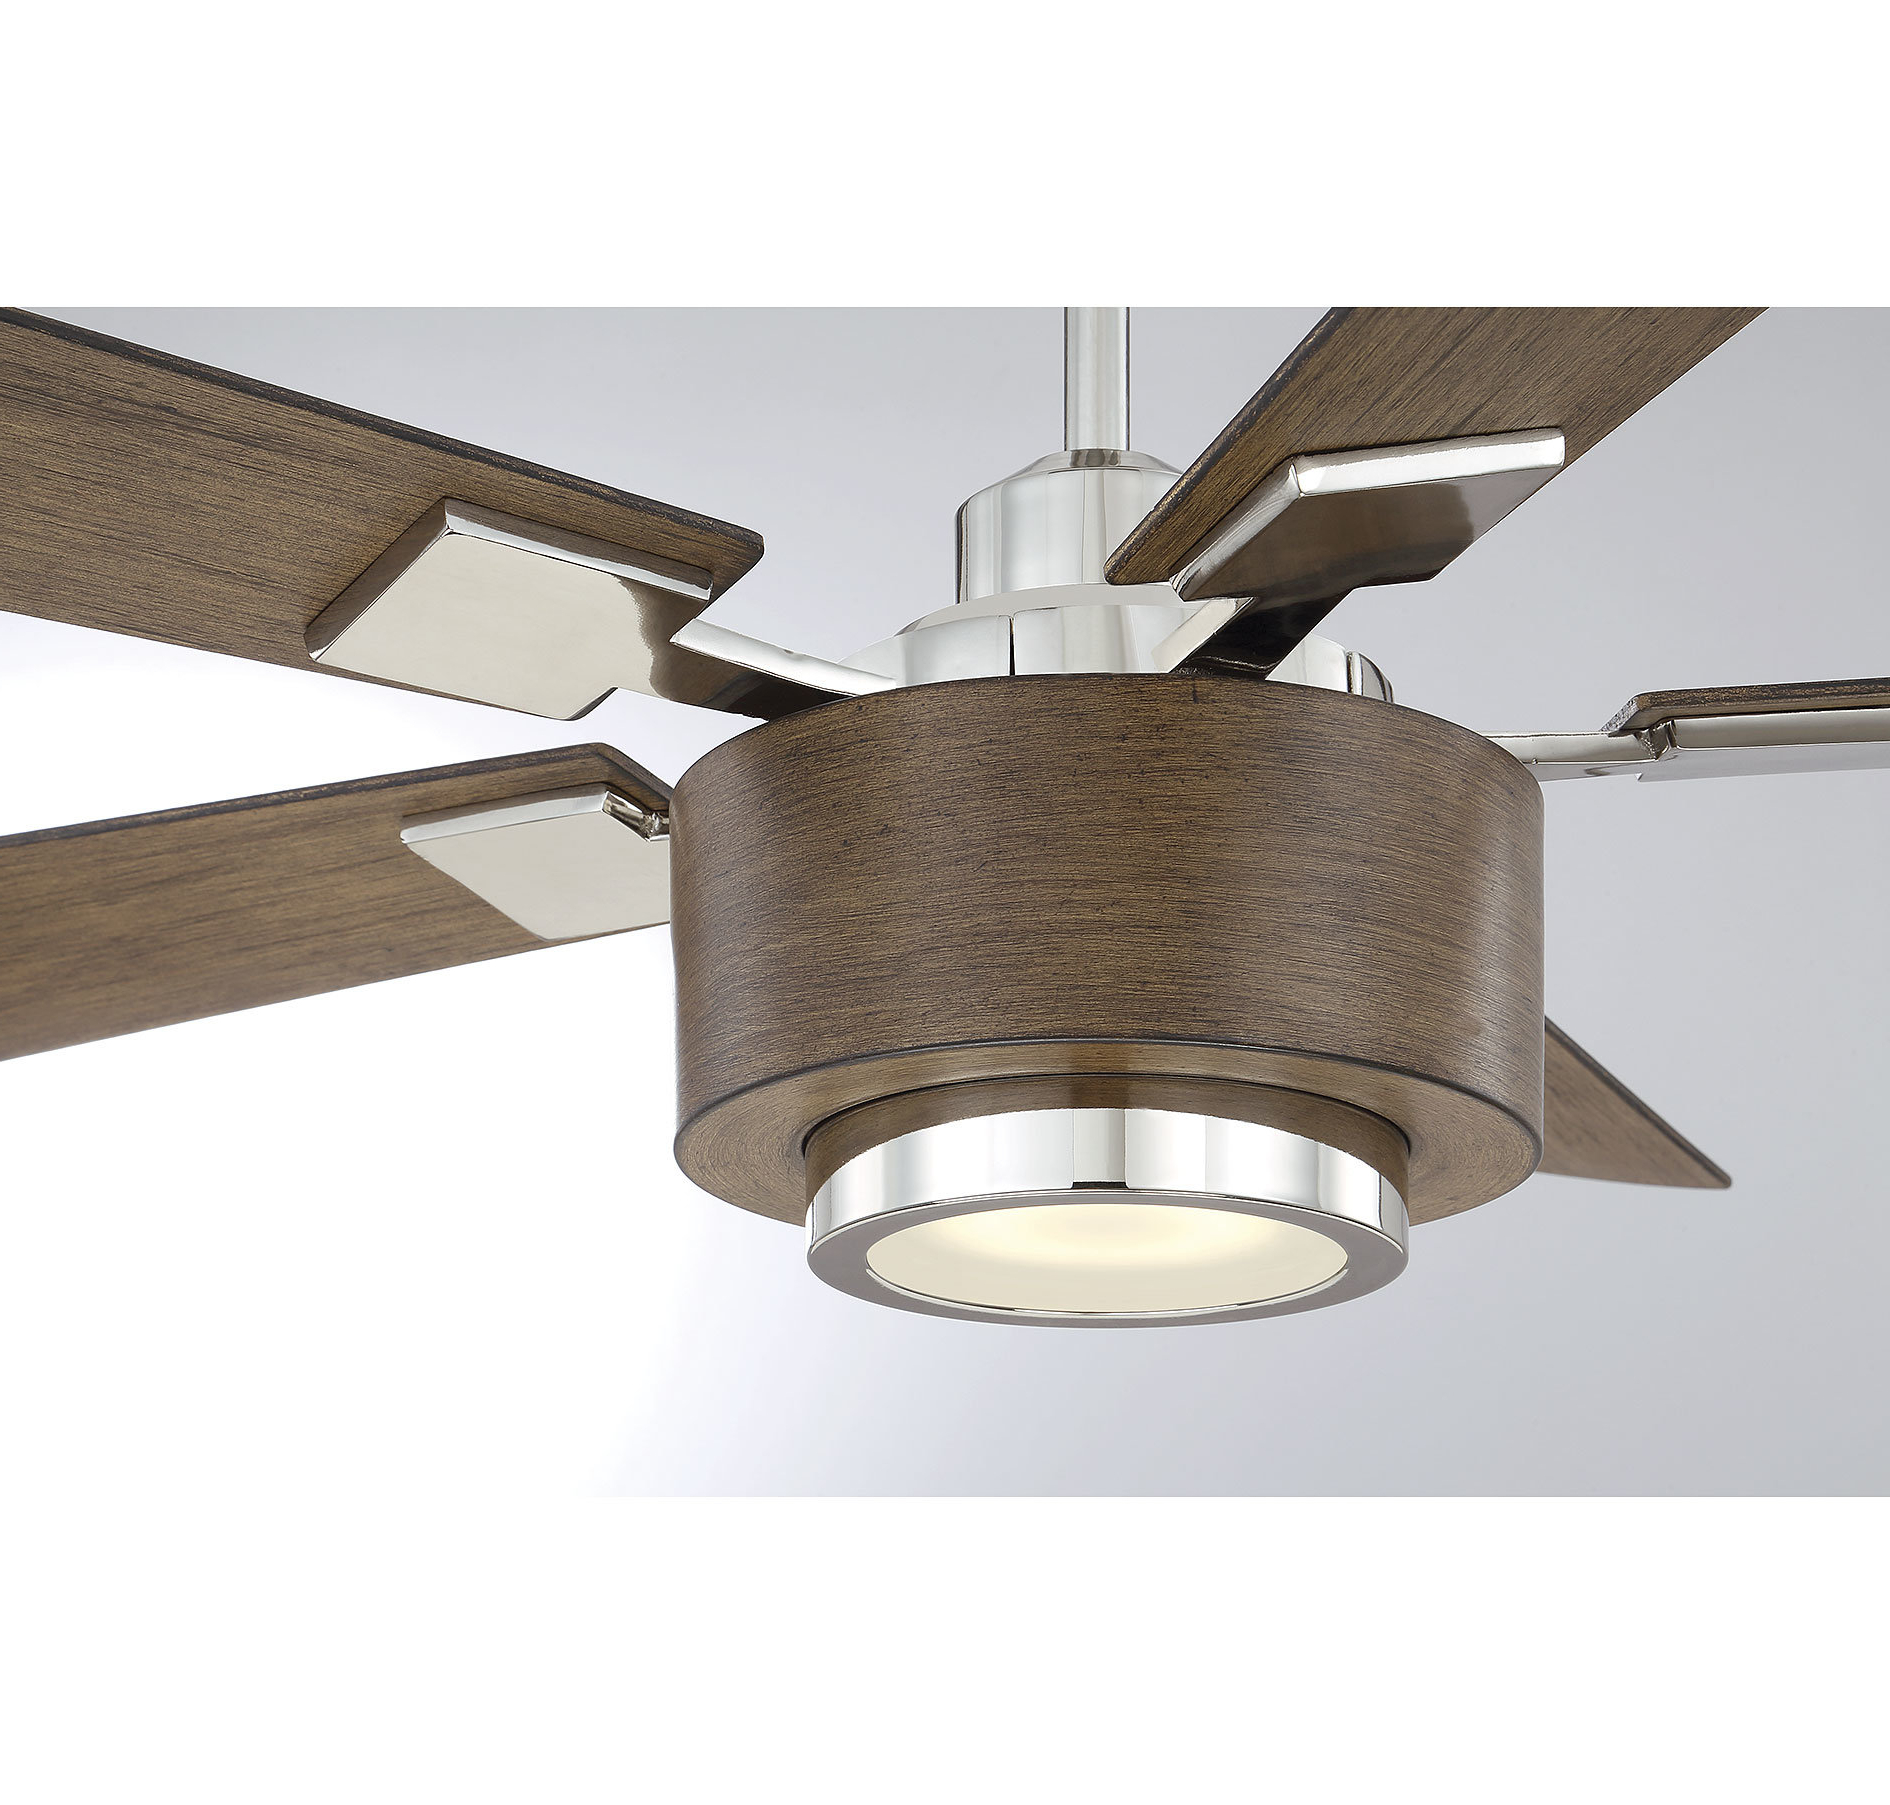 """St George 52"""" Winchester 5 Blade Led Ceiling Fan With Remote In Most Current Bennett 5 Blade Led Ceiling Fans With Remote (View 18 of 20)"""